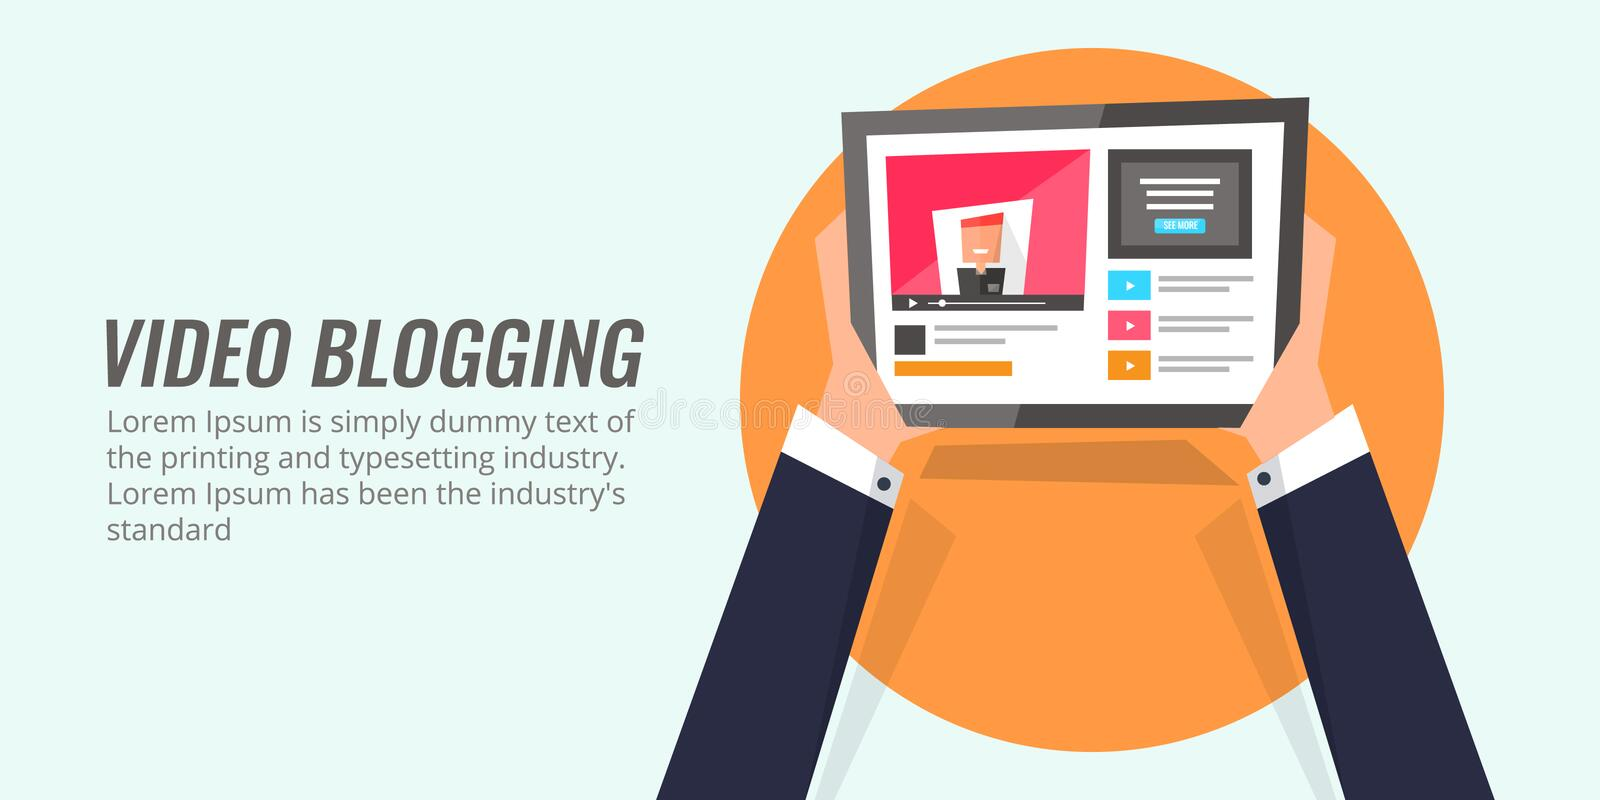 Hombre de negocios que mira un vídeo en un dispositivo de la tableta Vídeo blogging - concepto vlogging de márketing digital mode libre illustration